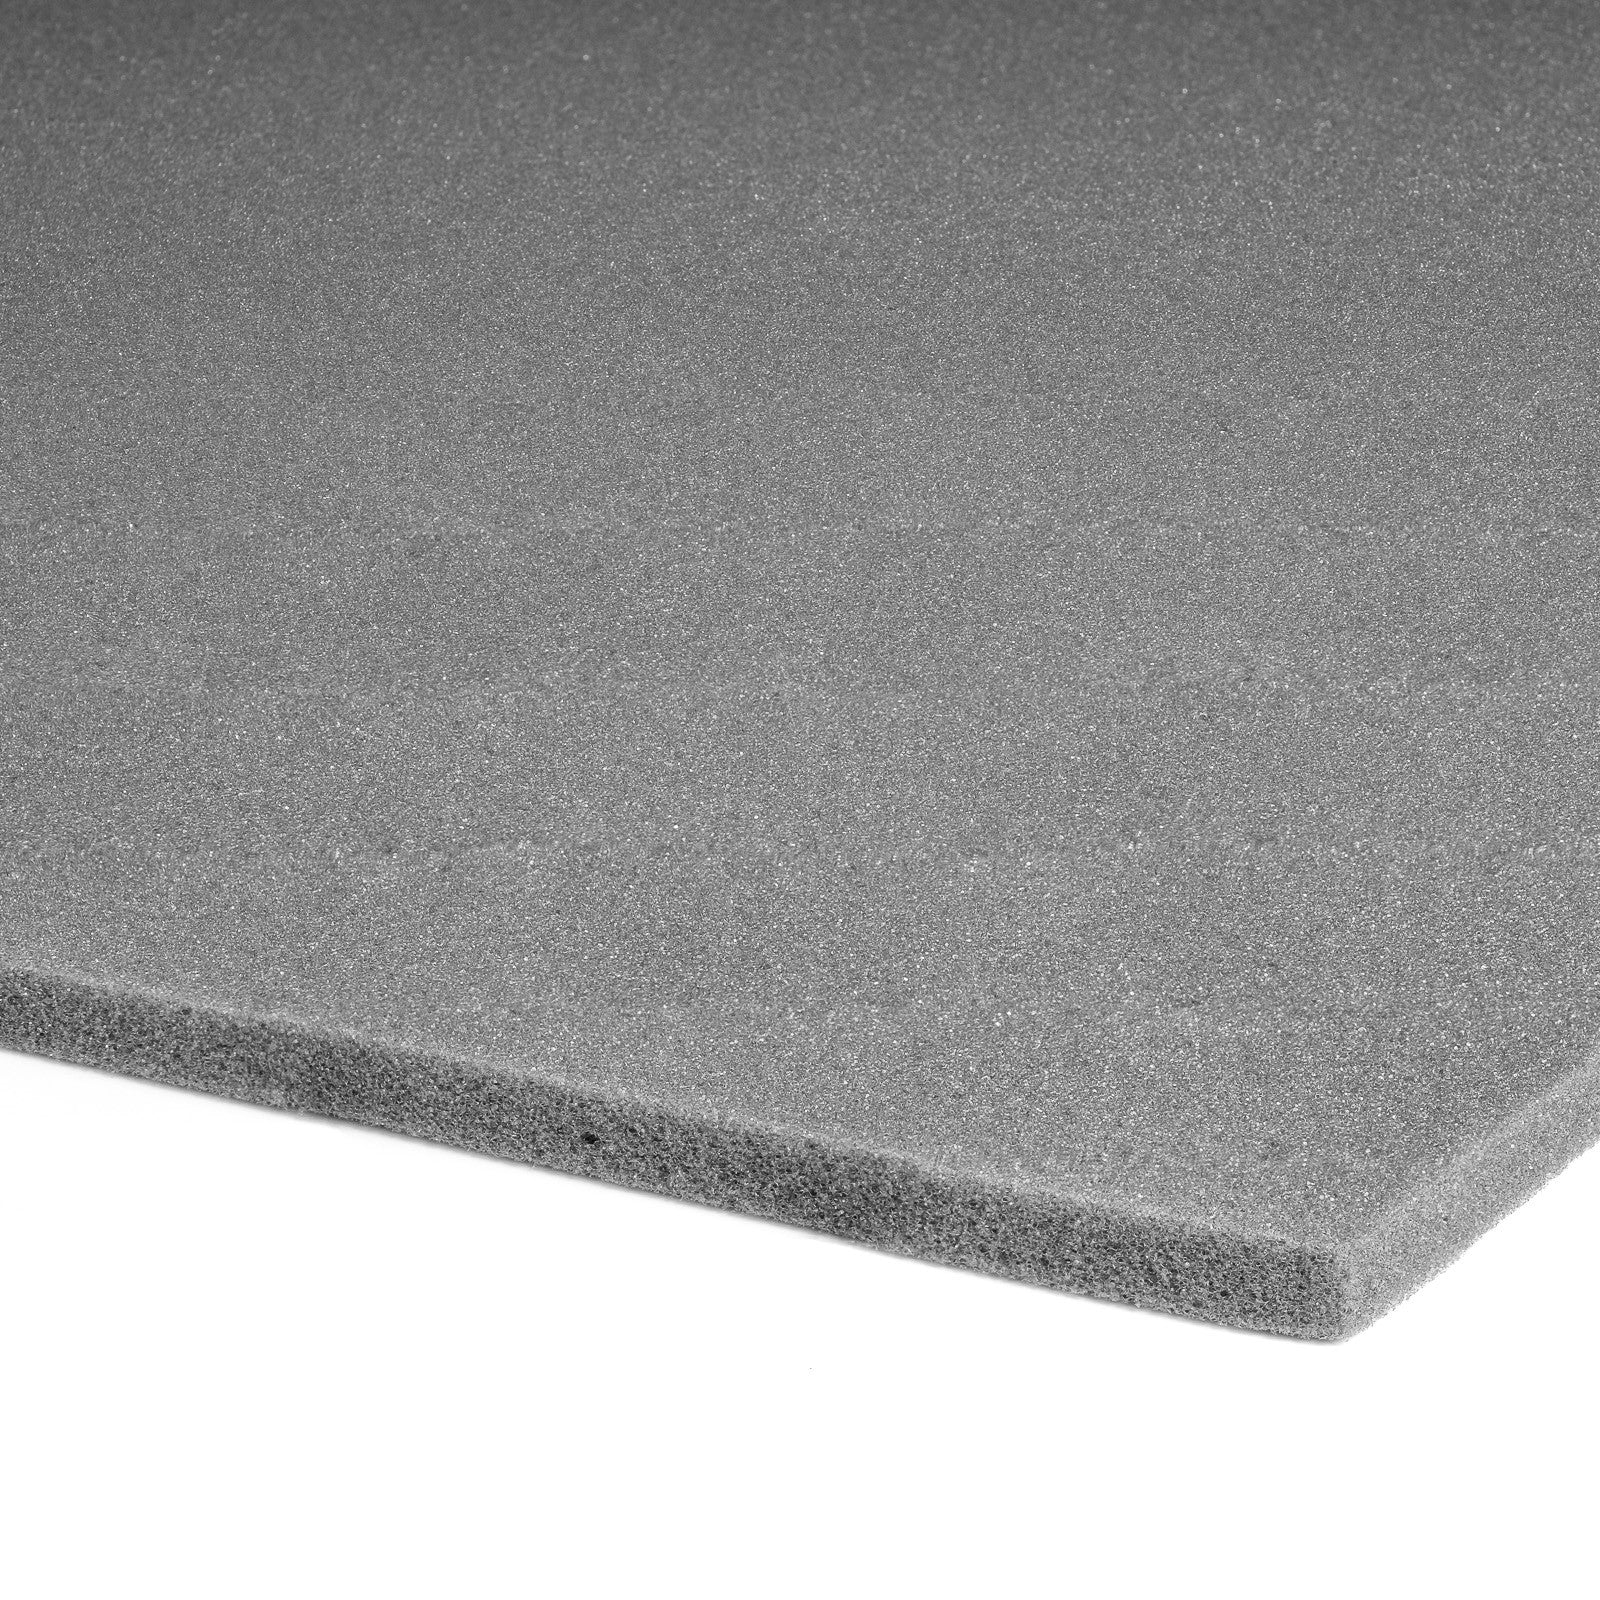 Poker Table Foam Padding - 42 x 72 x 3/8 inch